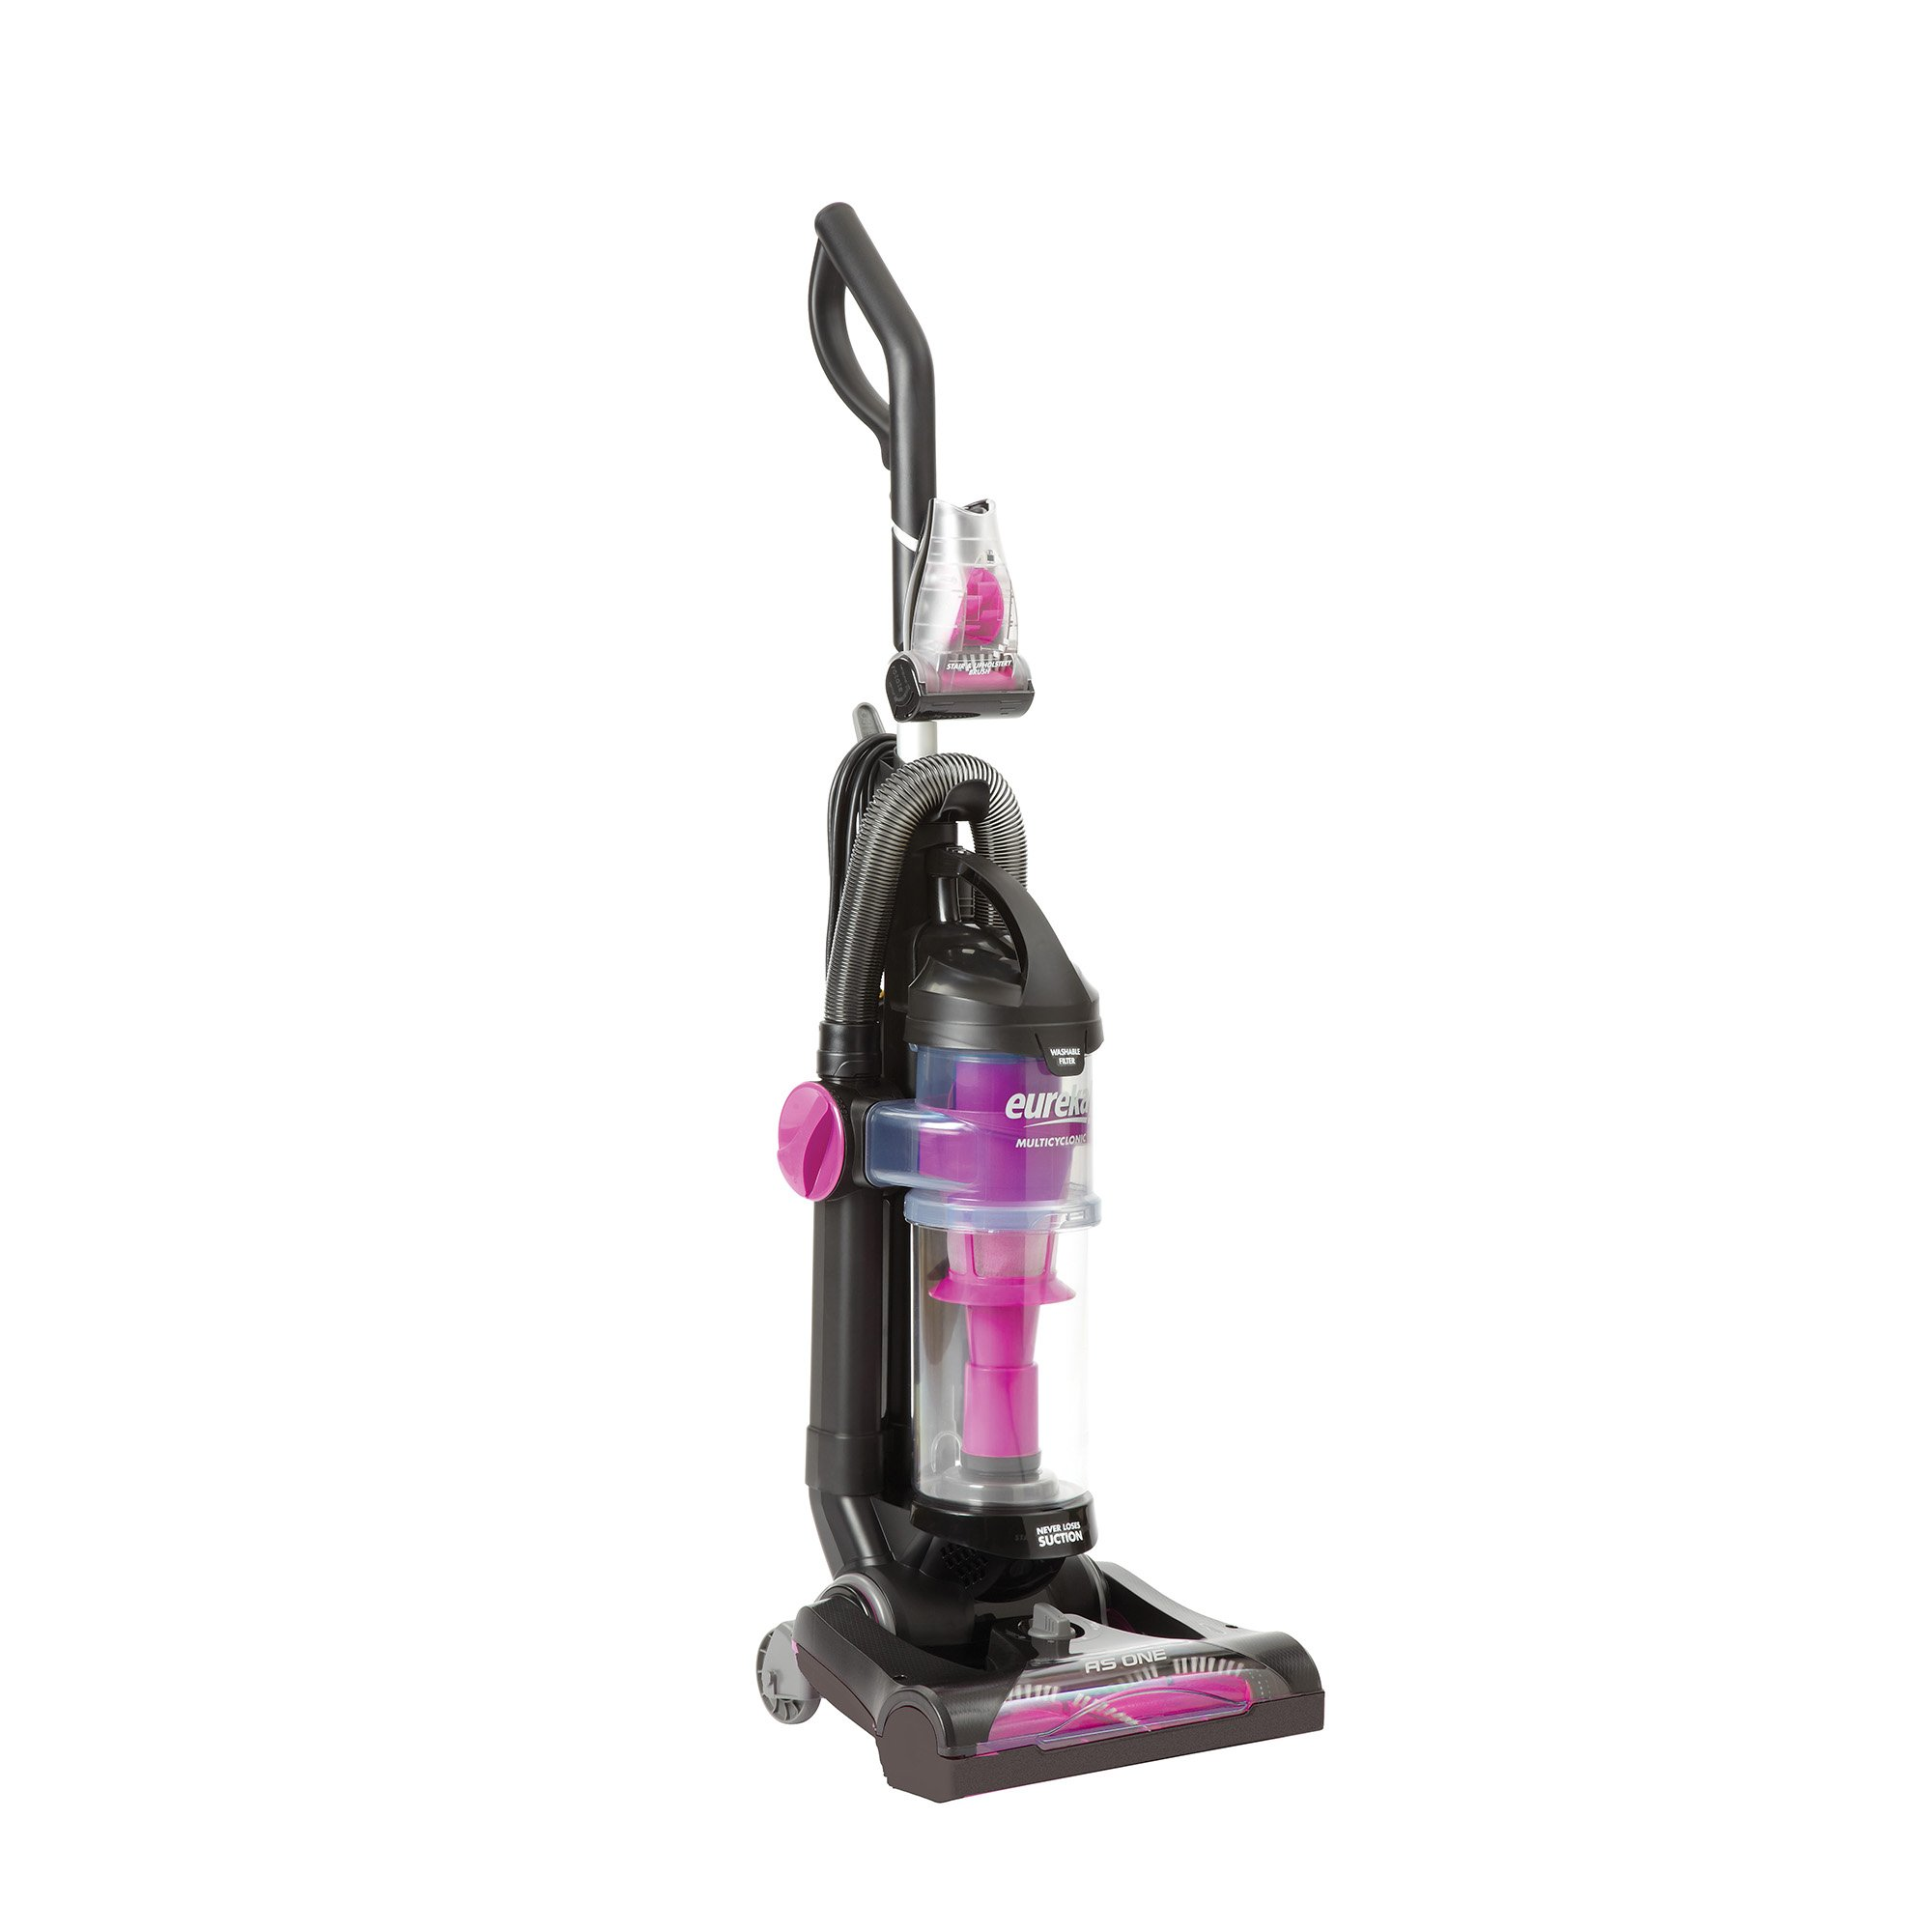 Eureka As One Pet Bagless Upright Vacuum As2130a Corded